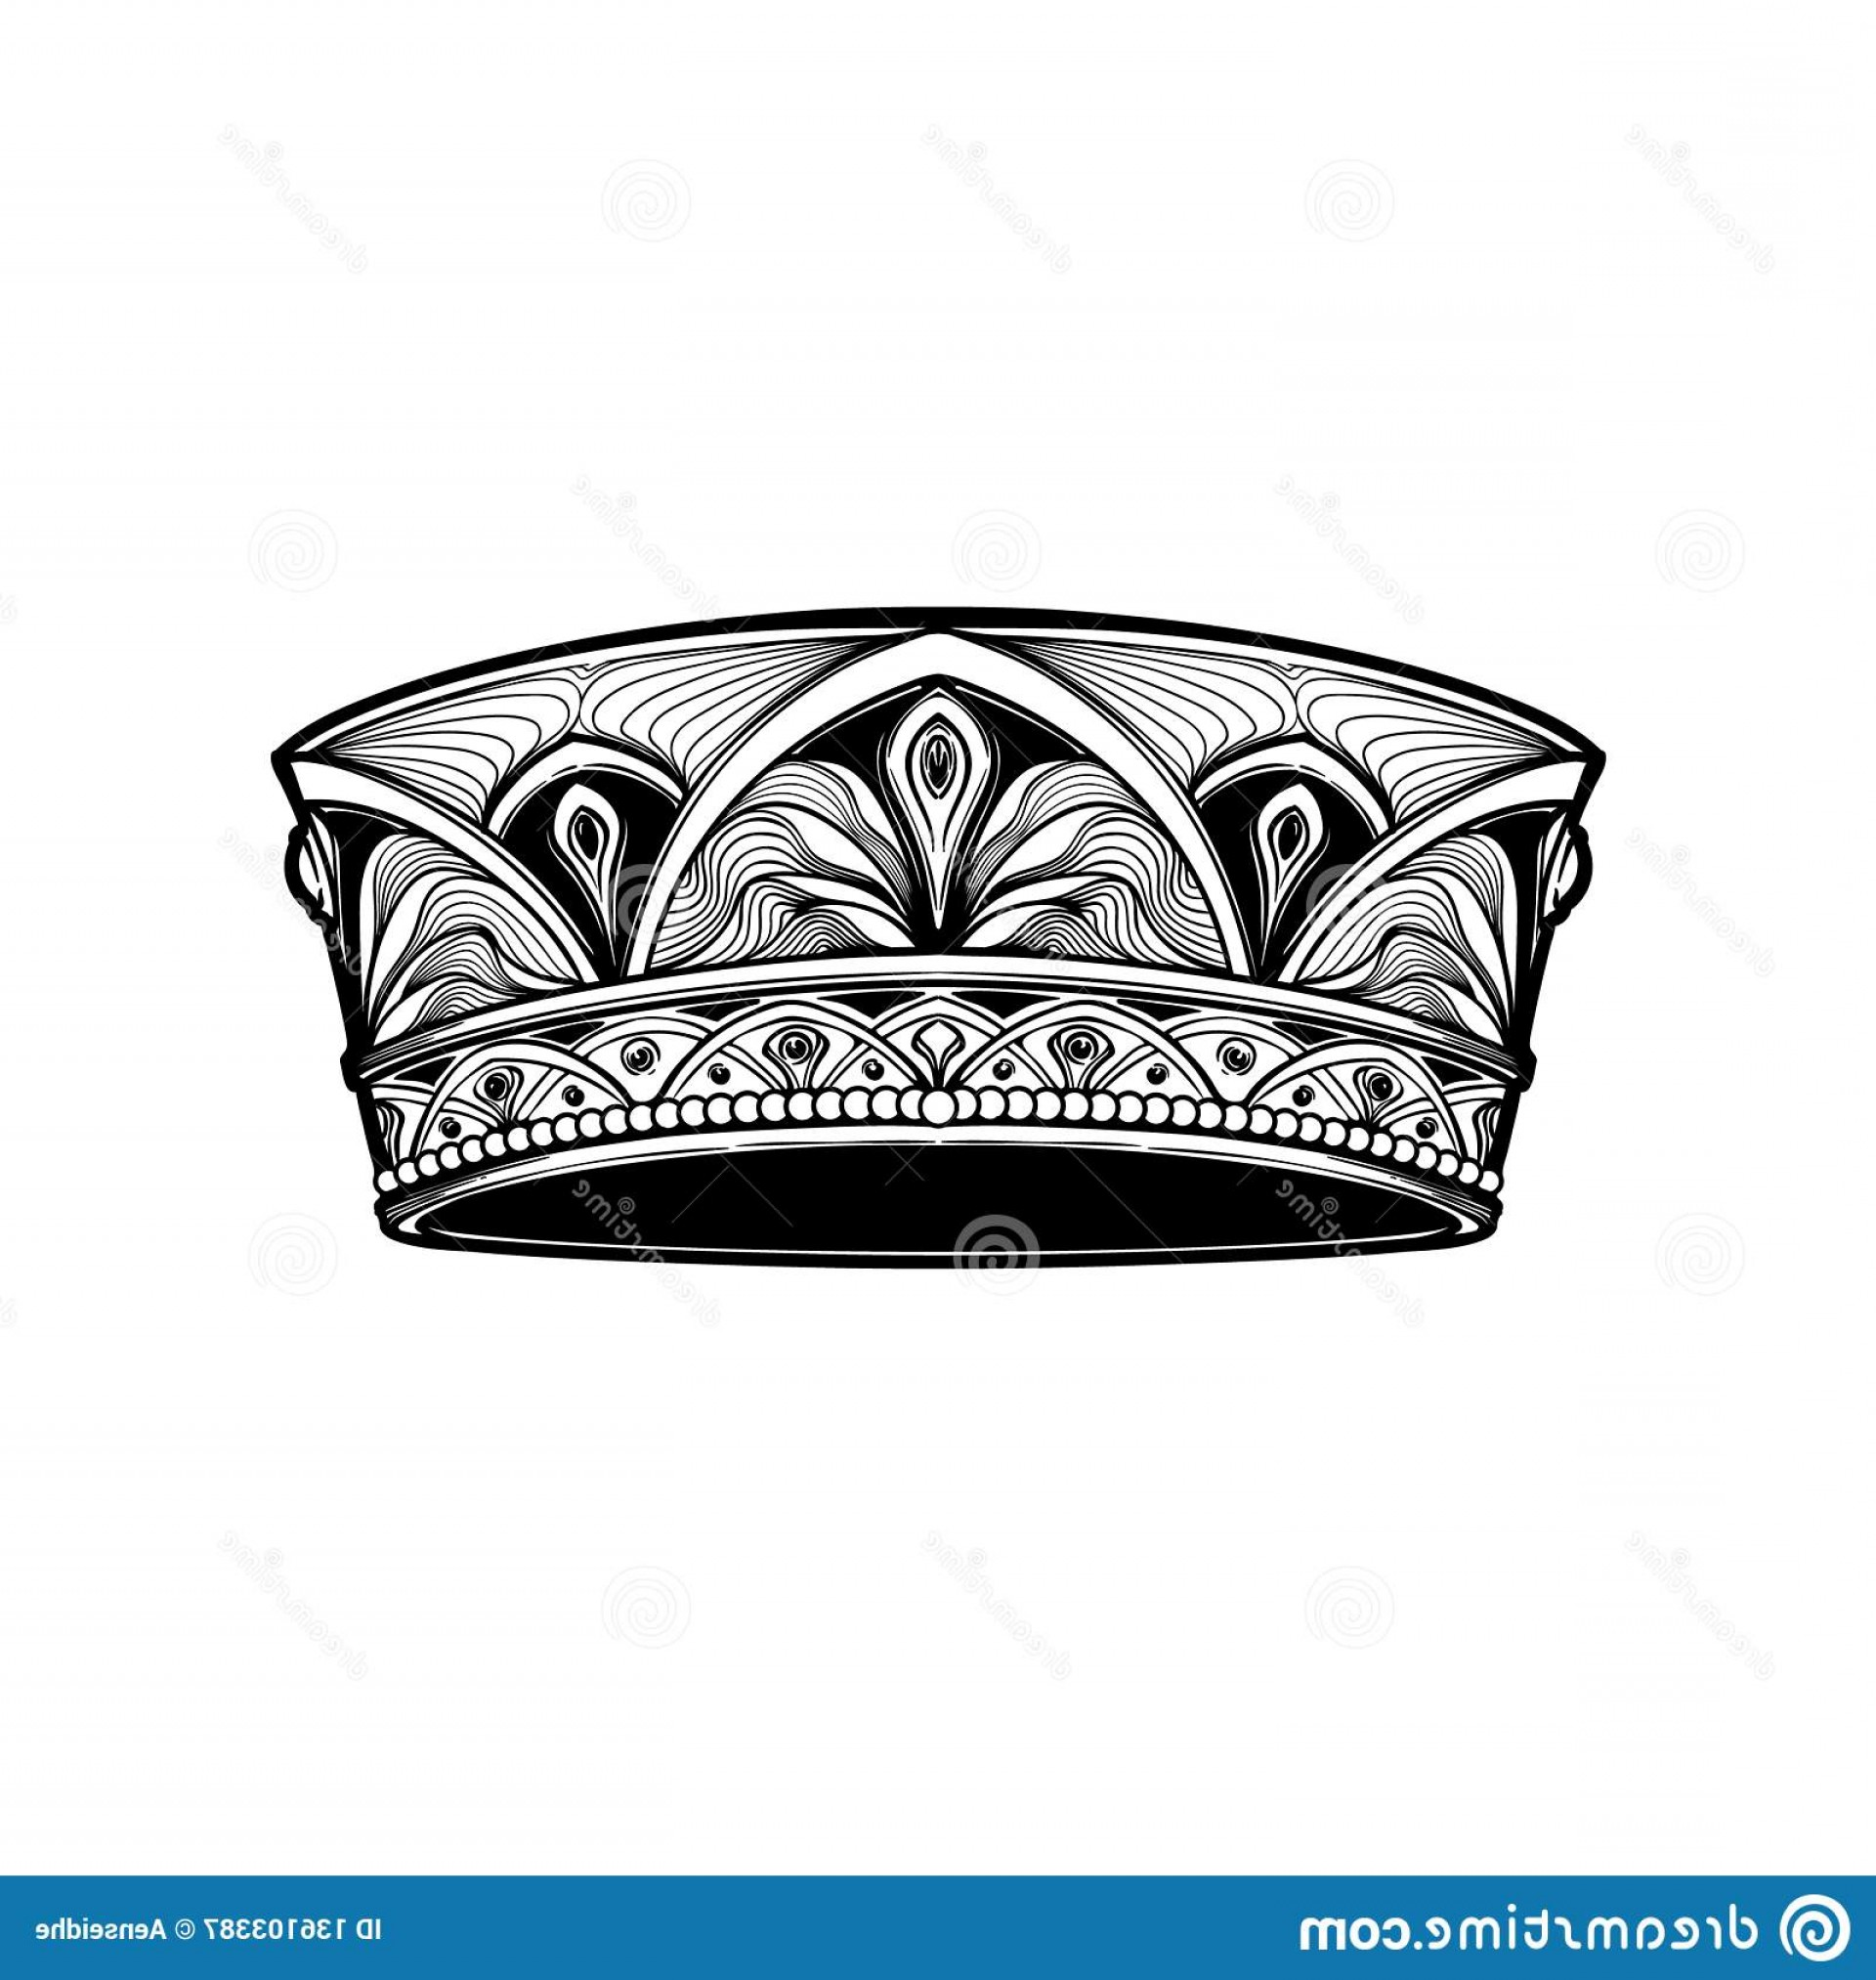 Detailed Tattoo Vector Images: Filigree High Detailed Crown Element Design Logo Emblem Tattoo Vector Illustration Isolated White Background Coloring Image